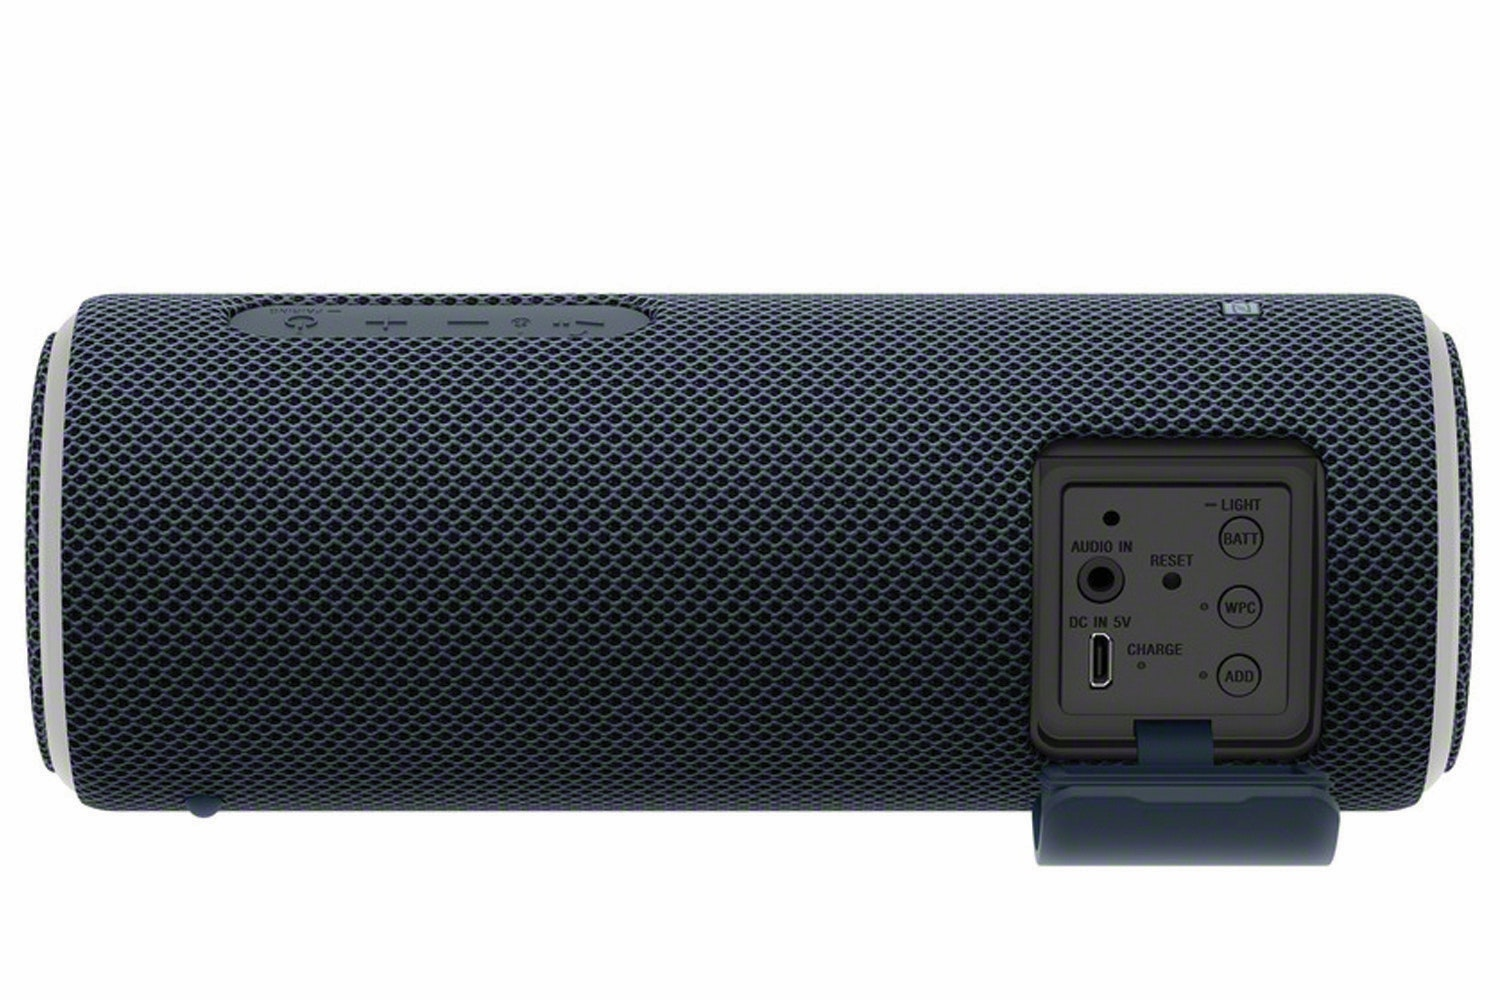 Sony SRSXB21B.CE7 Portable Waterproof Speaker with EXTRA BASS and 12 Hours Battery Life